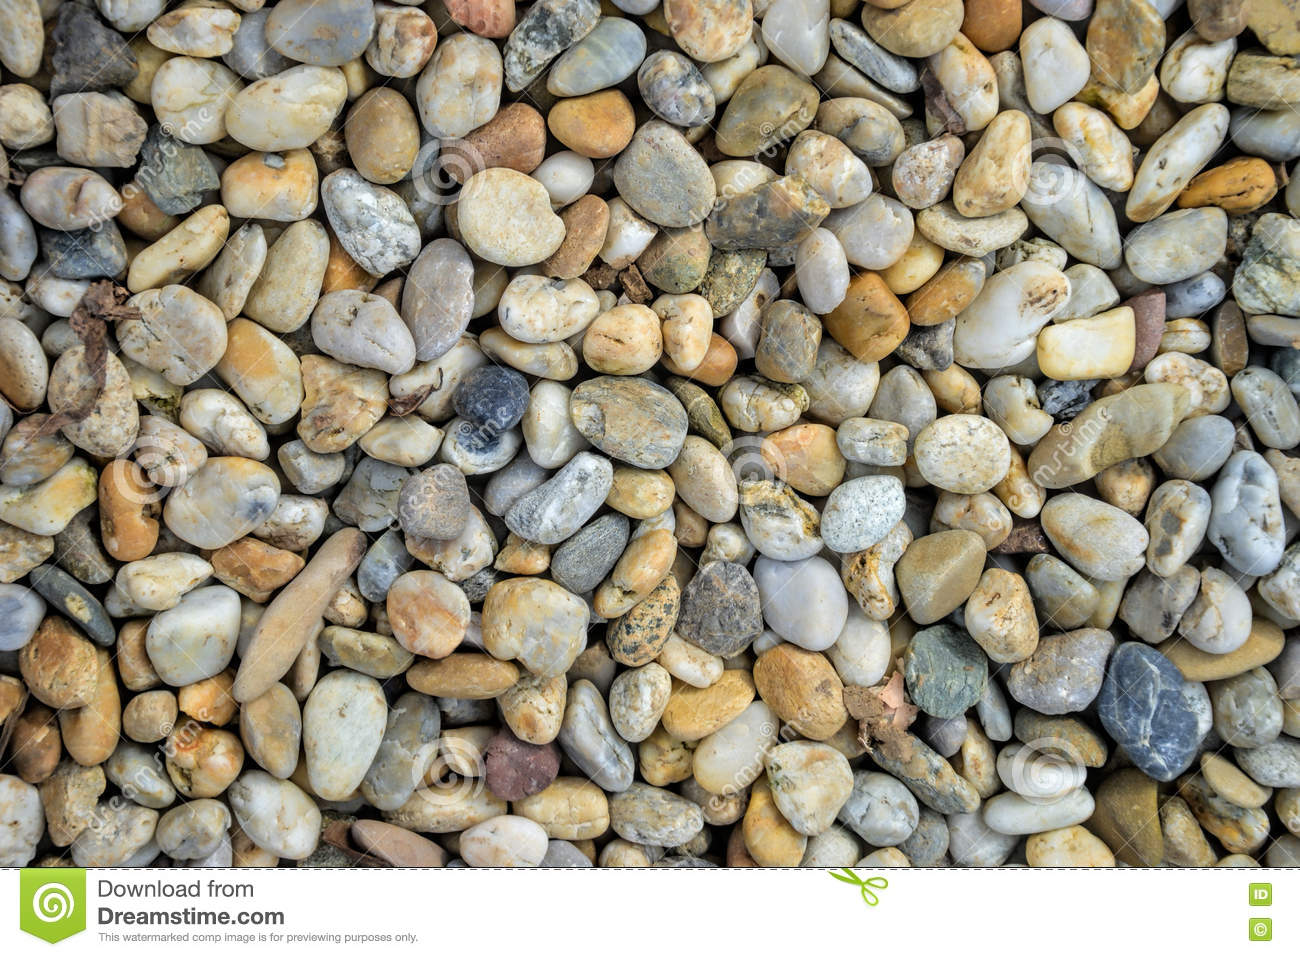 Smooth shaped white stones surface texture background stock photo - Small Stones Gravel Texture Naturally Pebble Textured Background Garden Decor Stock Image